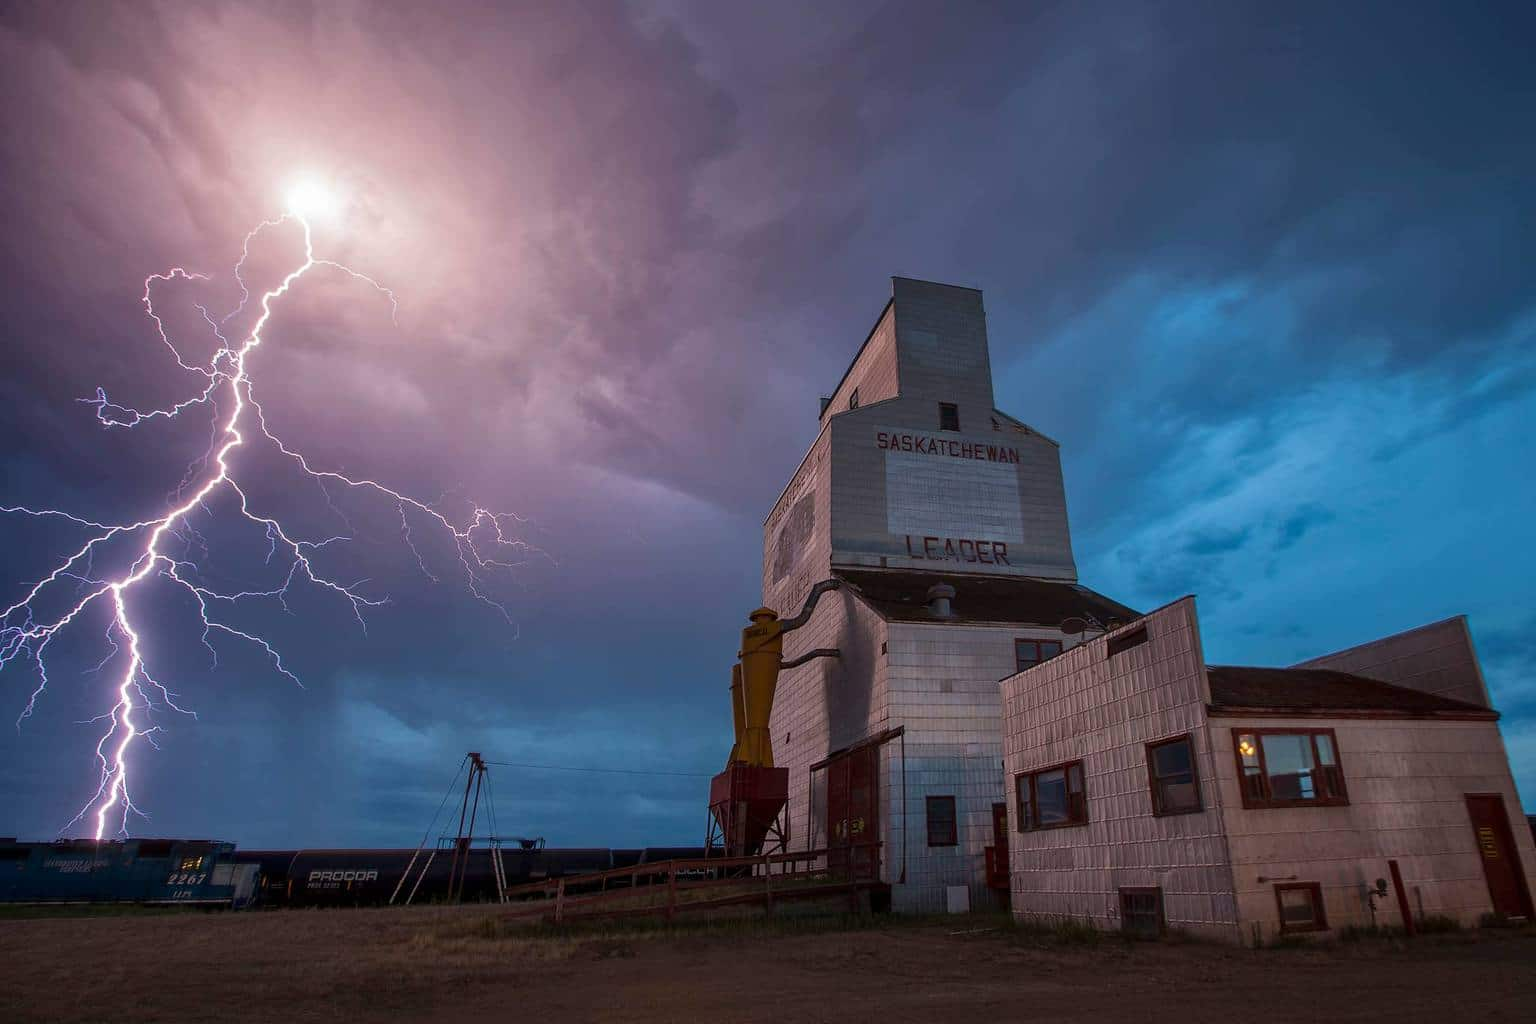 Bucket List Shot! I did not go storm chasing today, but said I will wait for them to come to me, and hope they still have lightning in them. 9 hours later, I took my mom out to watch the storm. I set up my camera at the last standing grain elevator in Leader Saskatchewan, where I have lived for 37 years. 30 pics into the 3.2 second exposures, this happened!! It has been my dream capture for years, and tonight it finally happened!